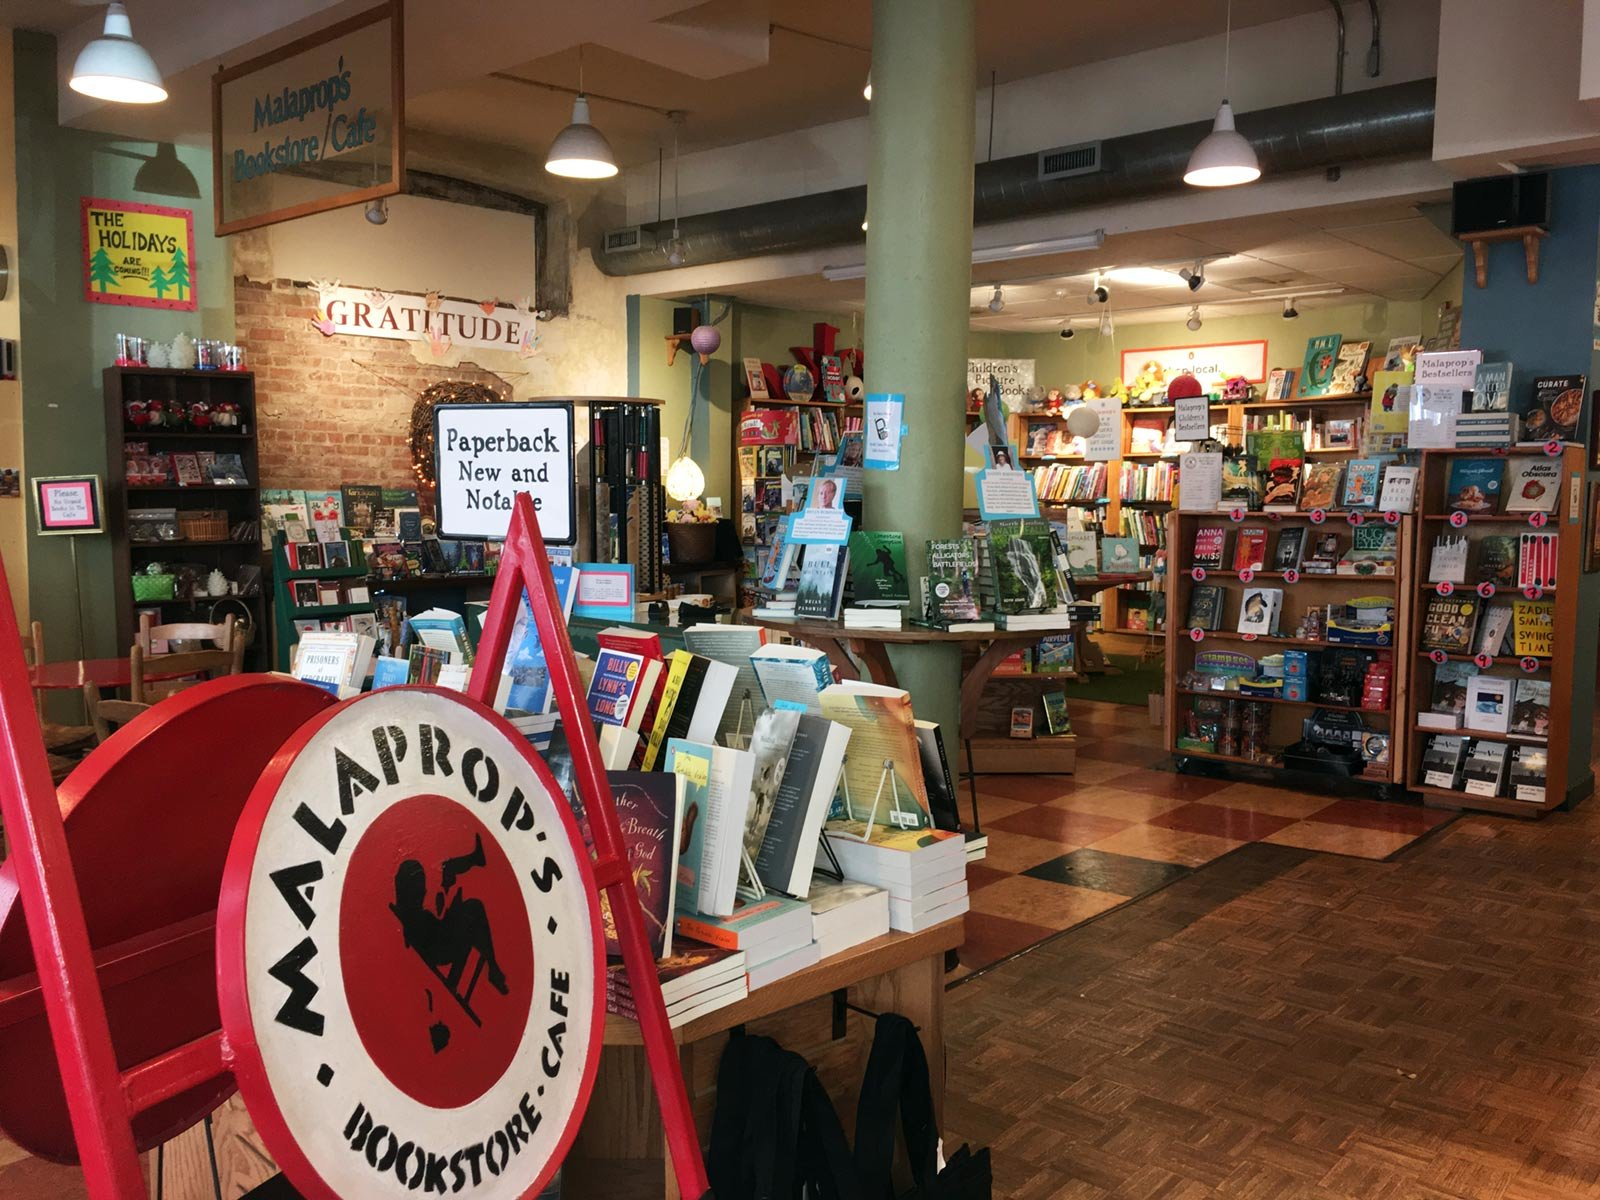 malaprops-bookstore-and-cafe-asheville-north-carolina-INDIEBOOK0124.jpg